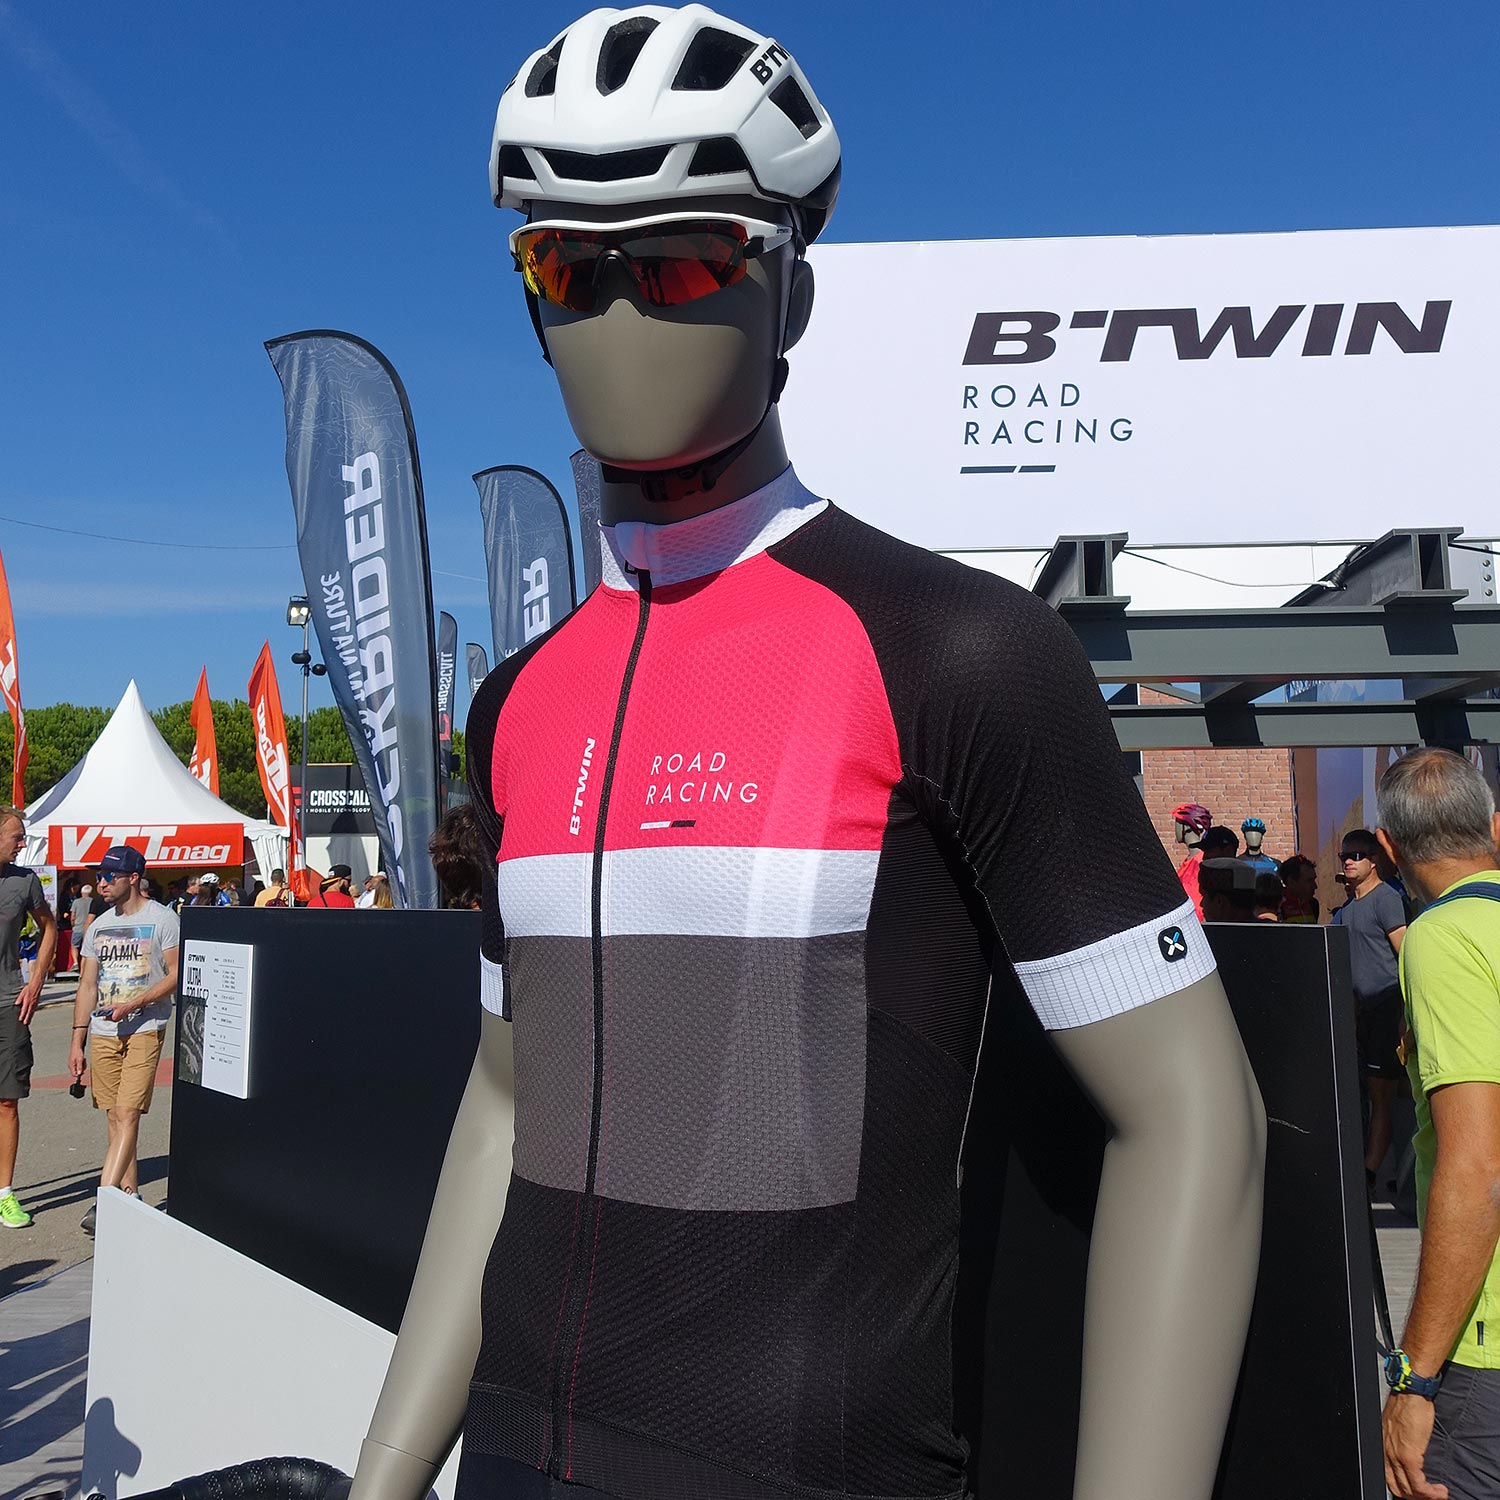 Maillot B'Twin 900 Road Cycling